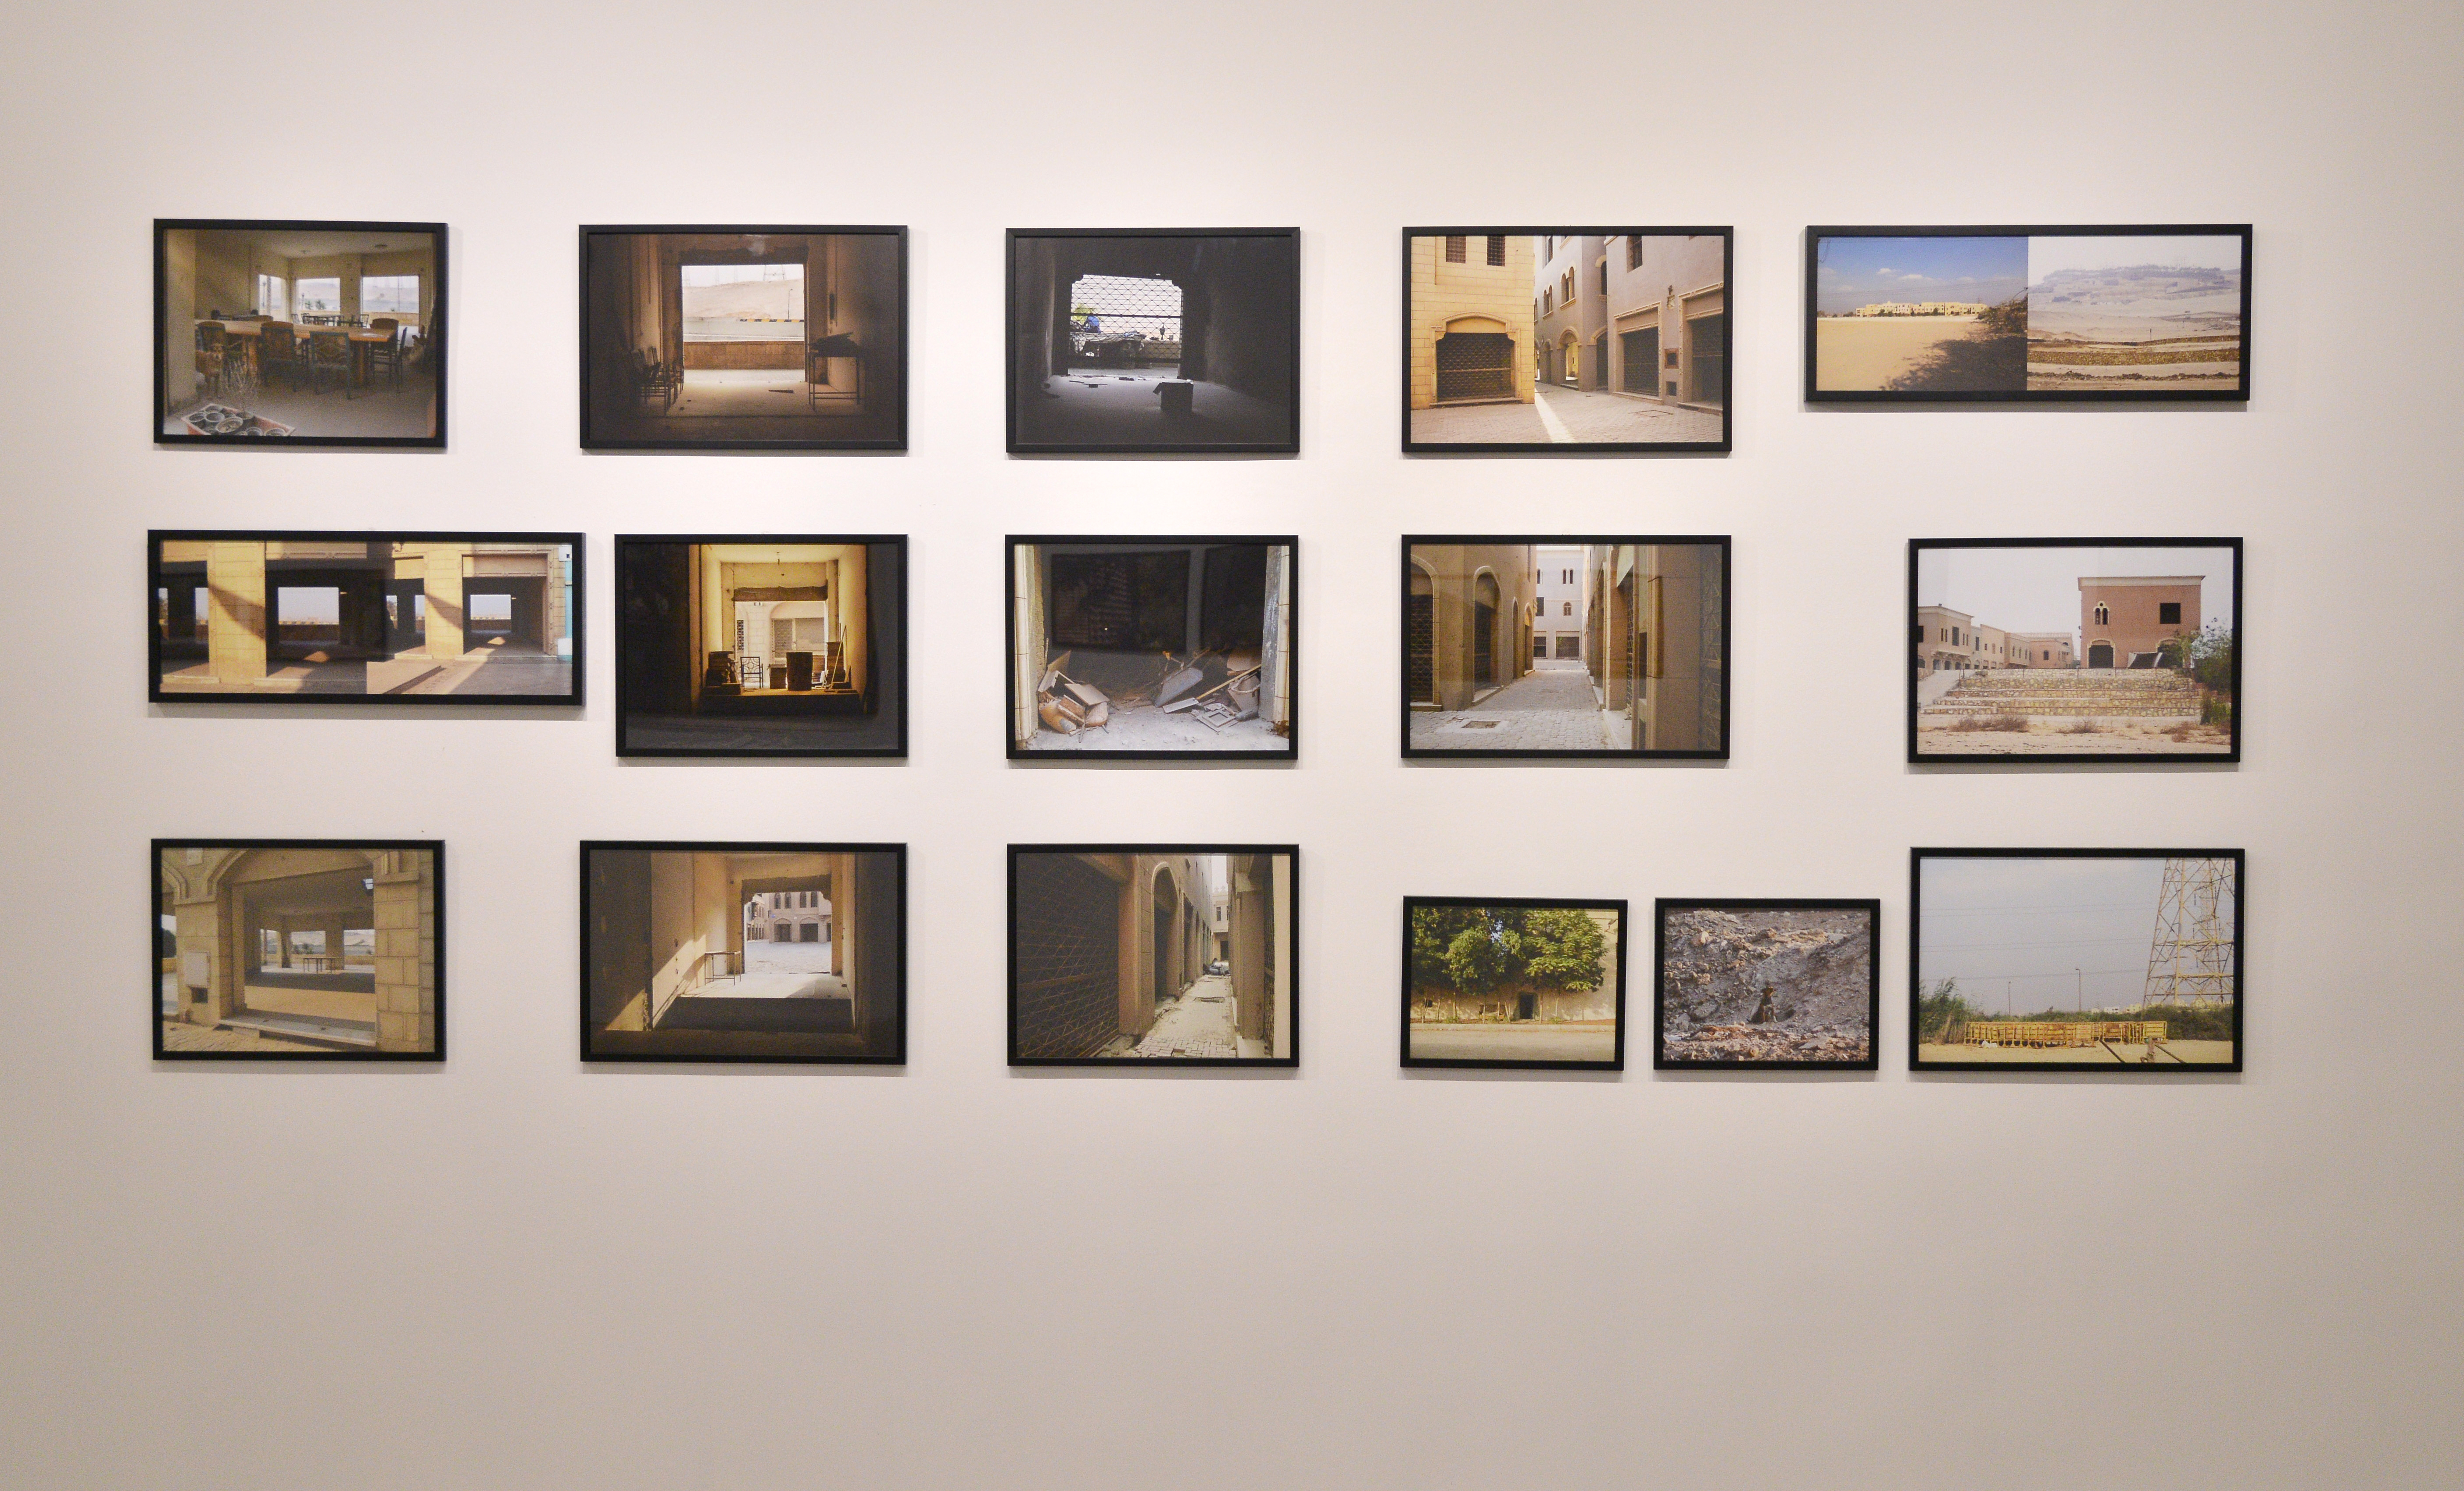 Exhibition Stand Synonym : Another stream of synonyms a conversation with rana elnemr madamasr